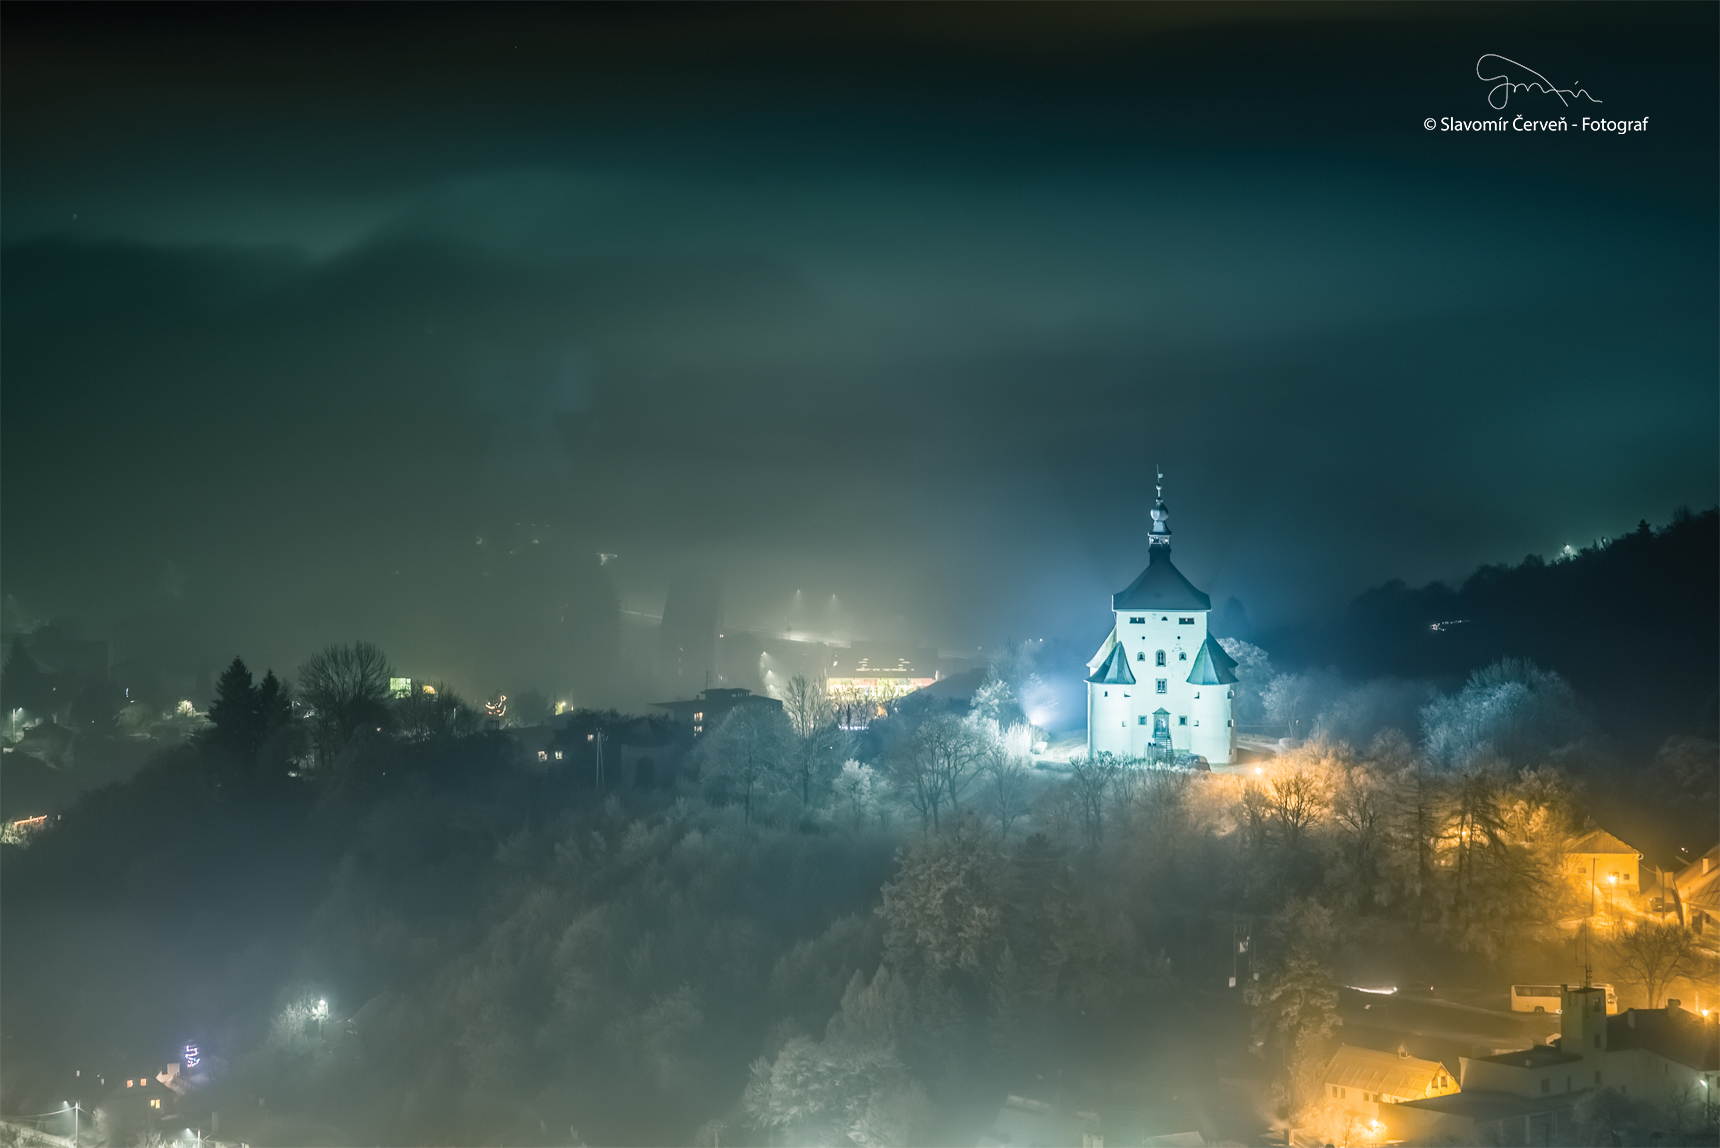 New Castle in the night